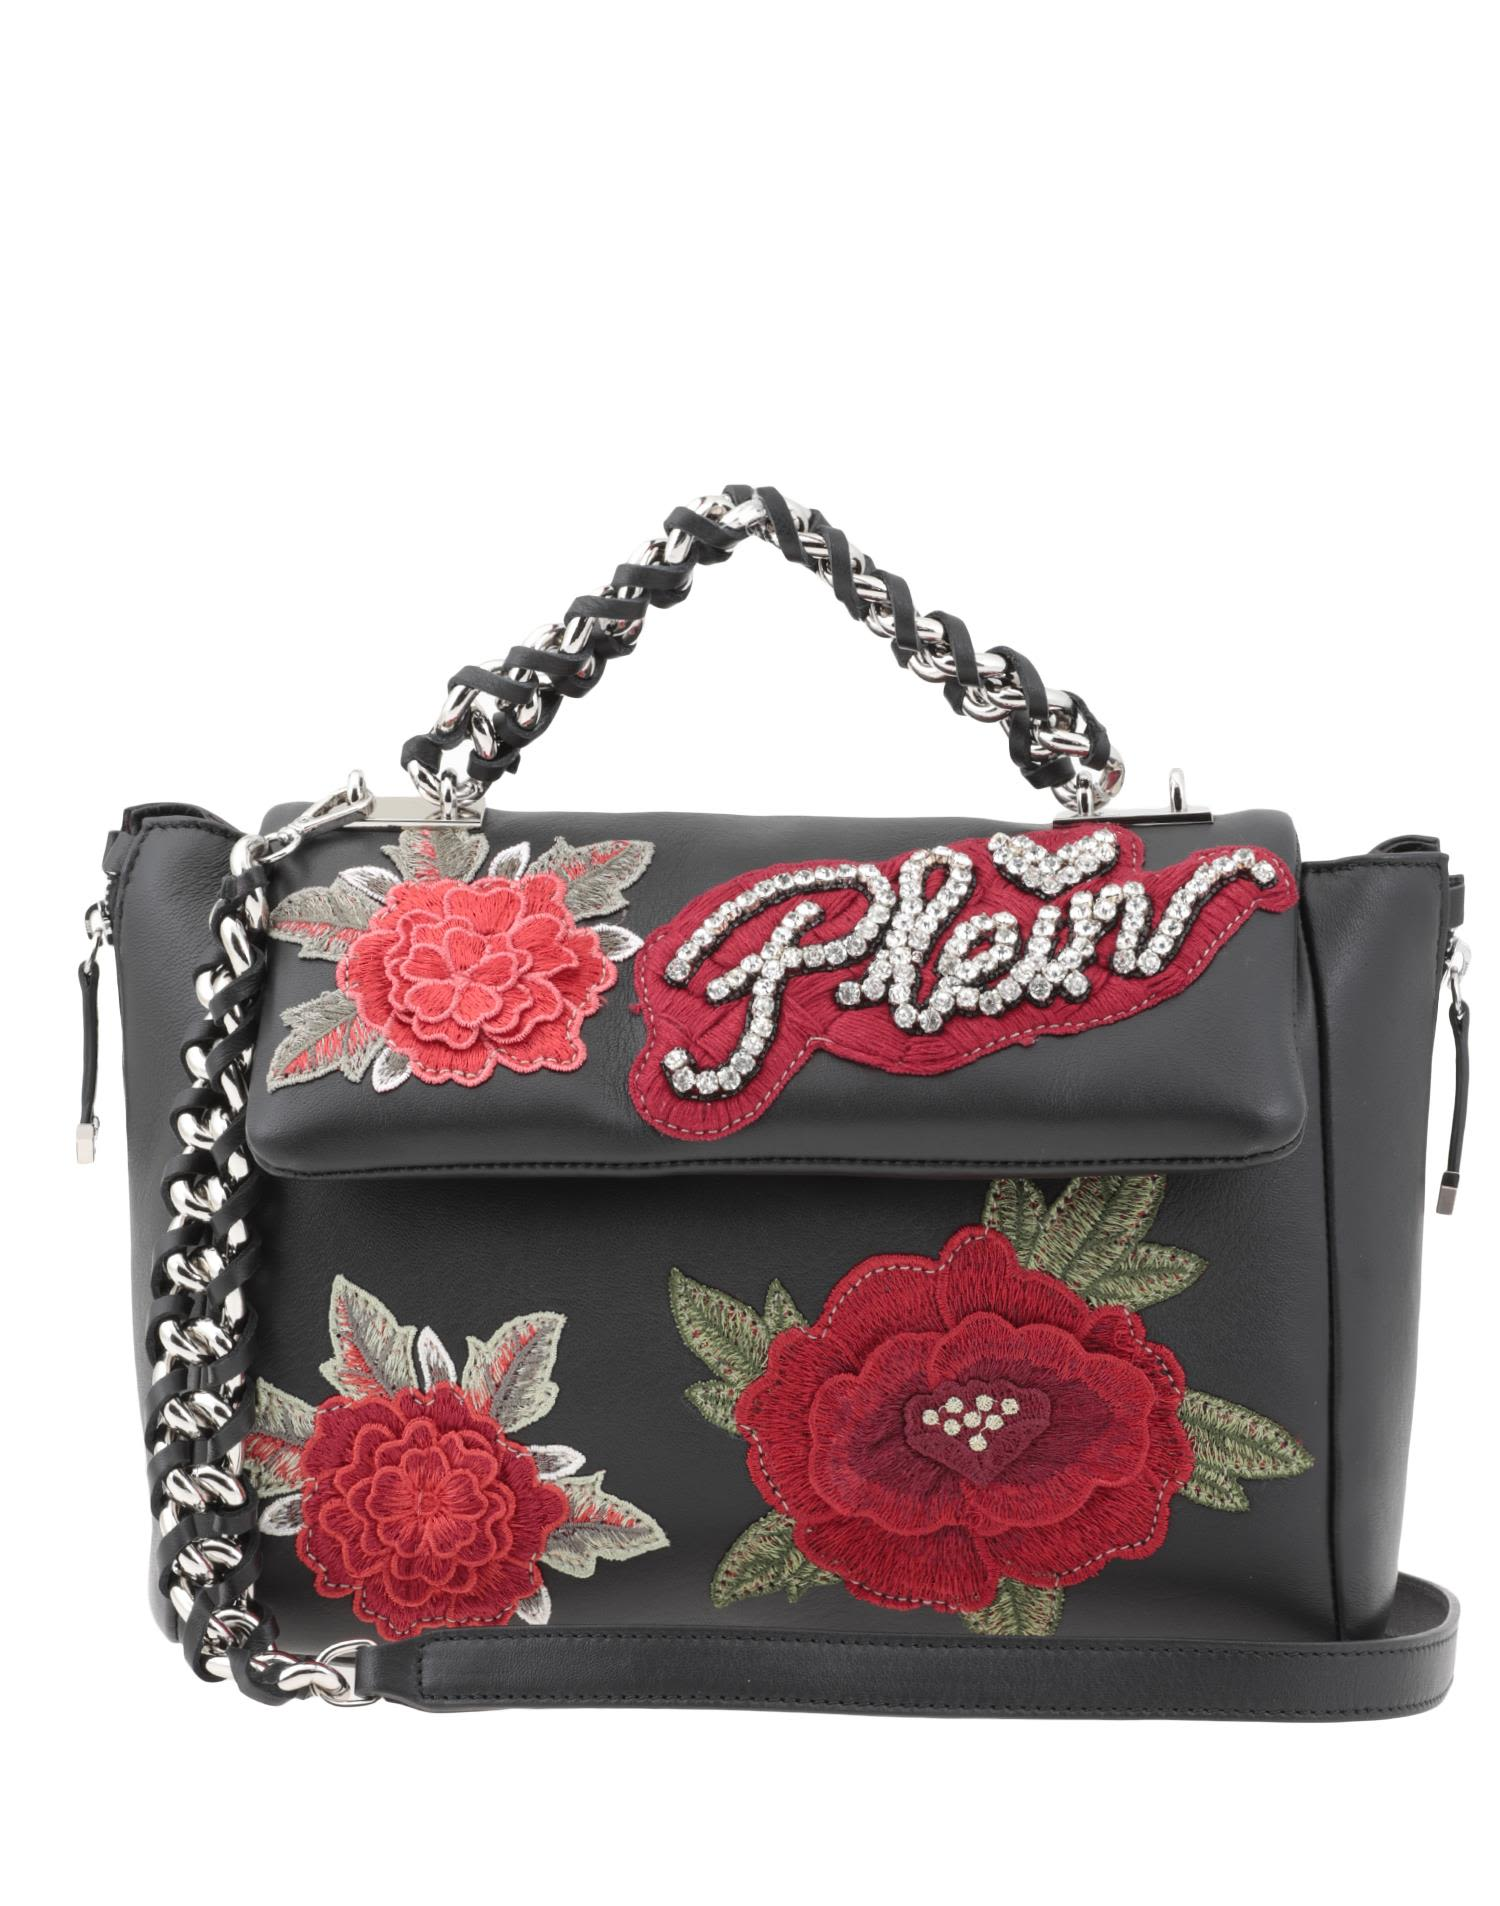 Philipp Plein Leather Bag